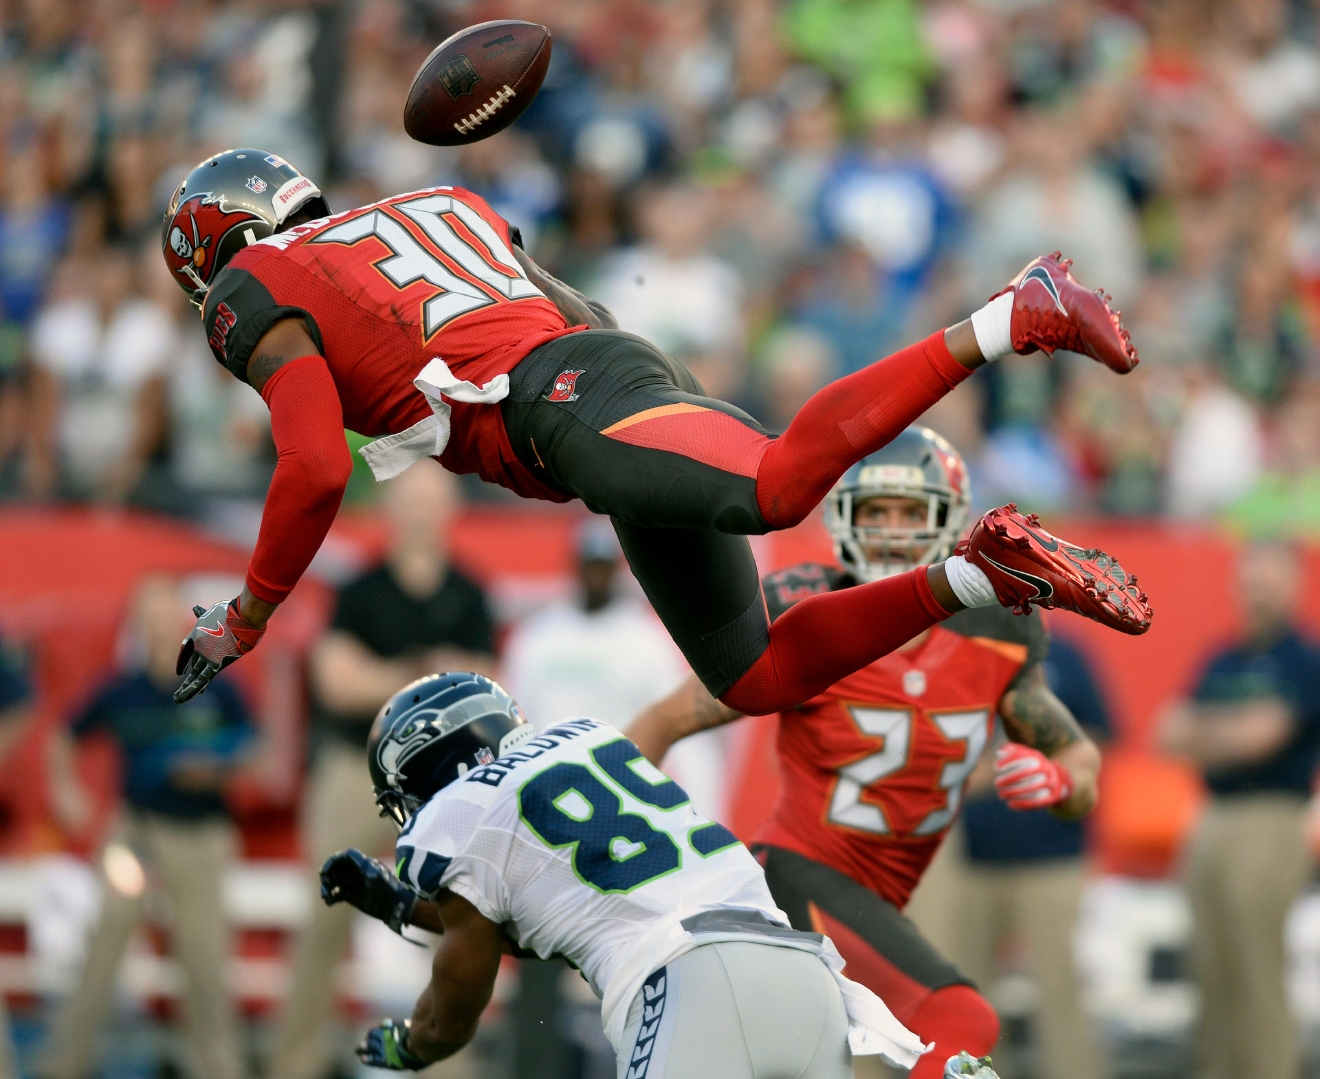 Seattle Seahawks wide receiver Doug Baldwin (89) loses the football as he is hit by Tampa Bay Buccaneers free safety Bradley McDougald (30) during the second quarter of an NFL football game Sunday, Nov. 27, 2016, in Tampa, Fla. McDougald was called for pass interference on the play. (AP Photo/Jason Behnken)